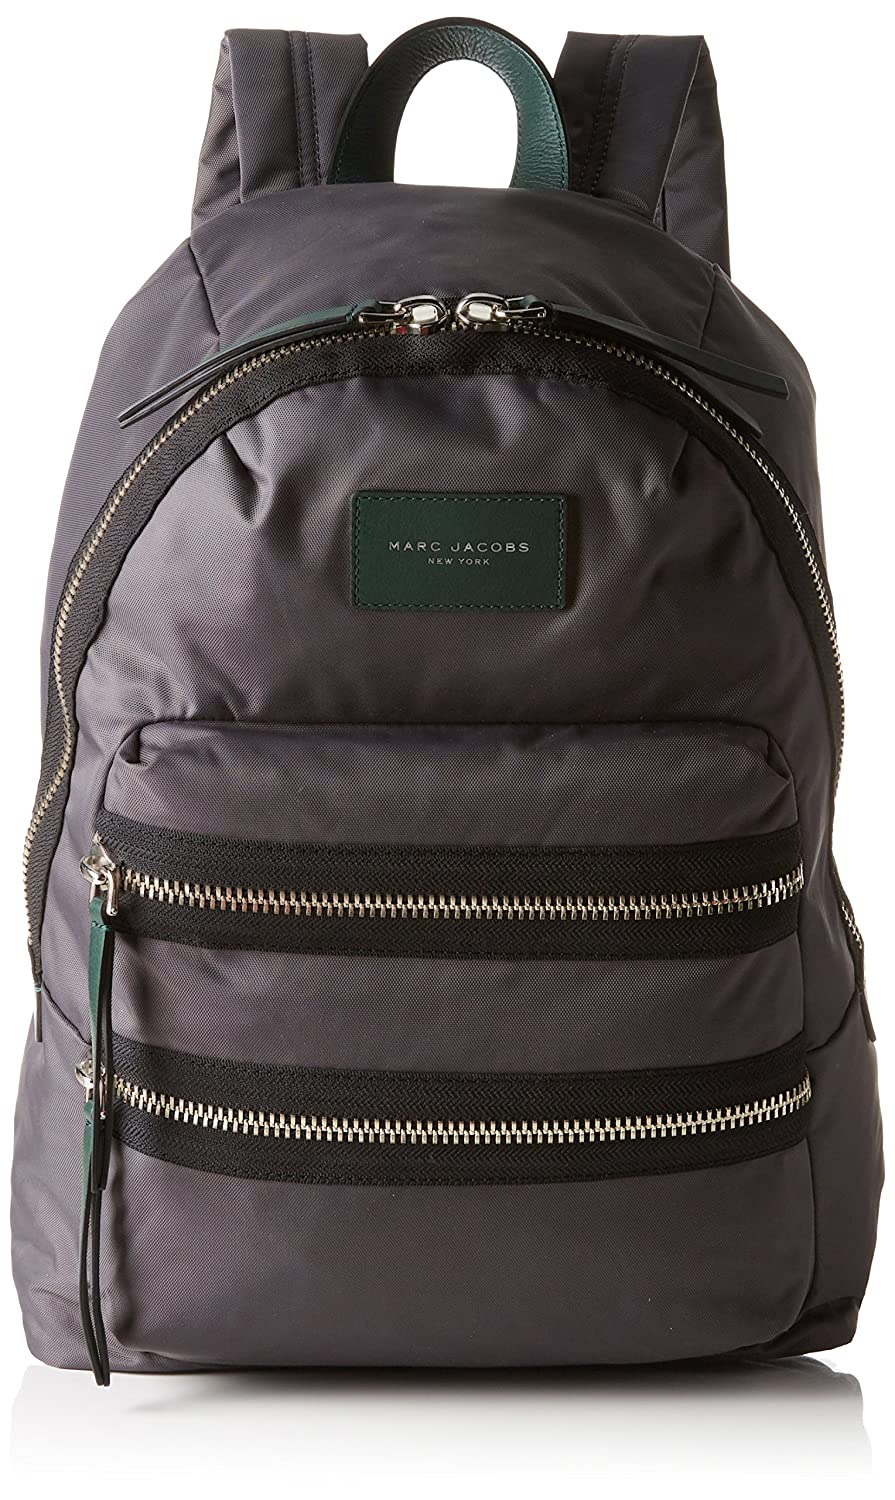 NWT MARC JACOBS Large Preppy Nylon Backpack in Black $ 250 NEW